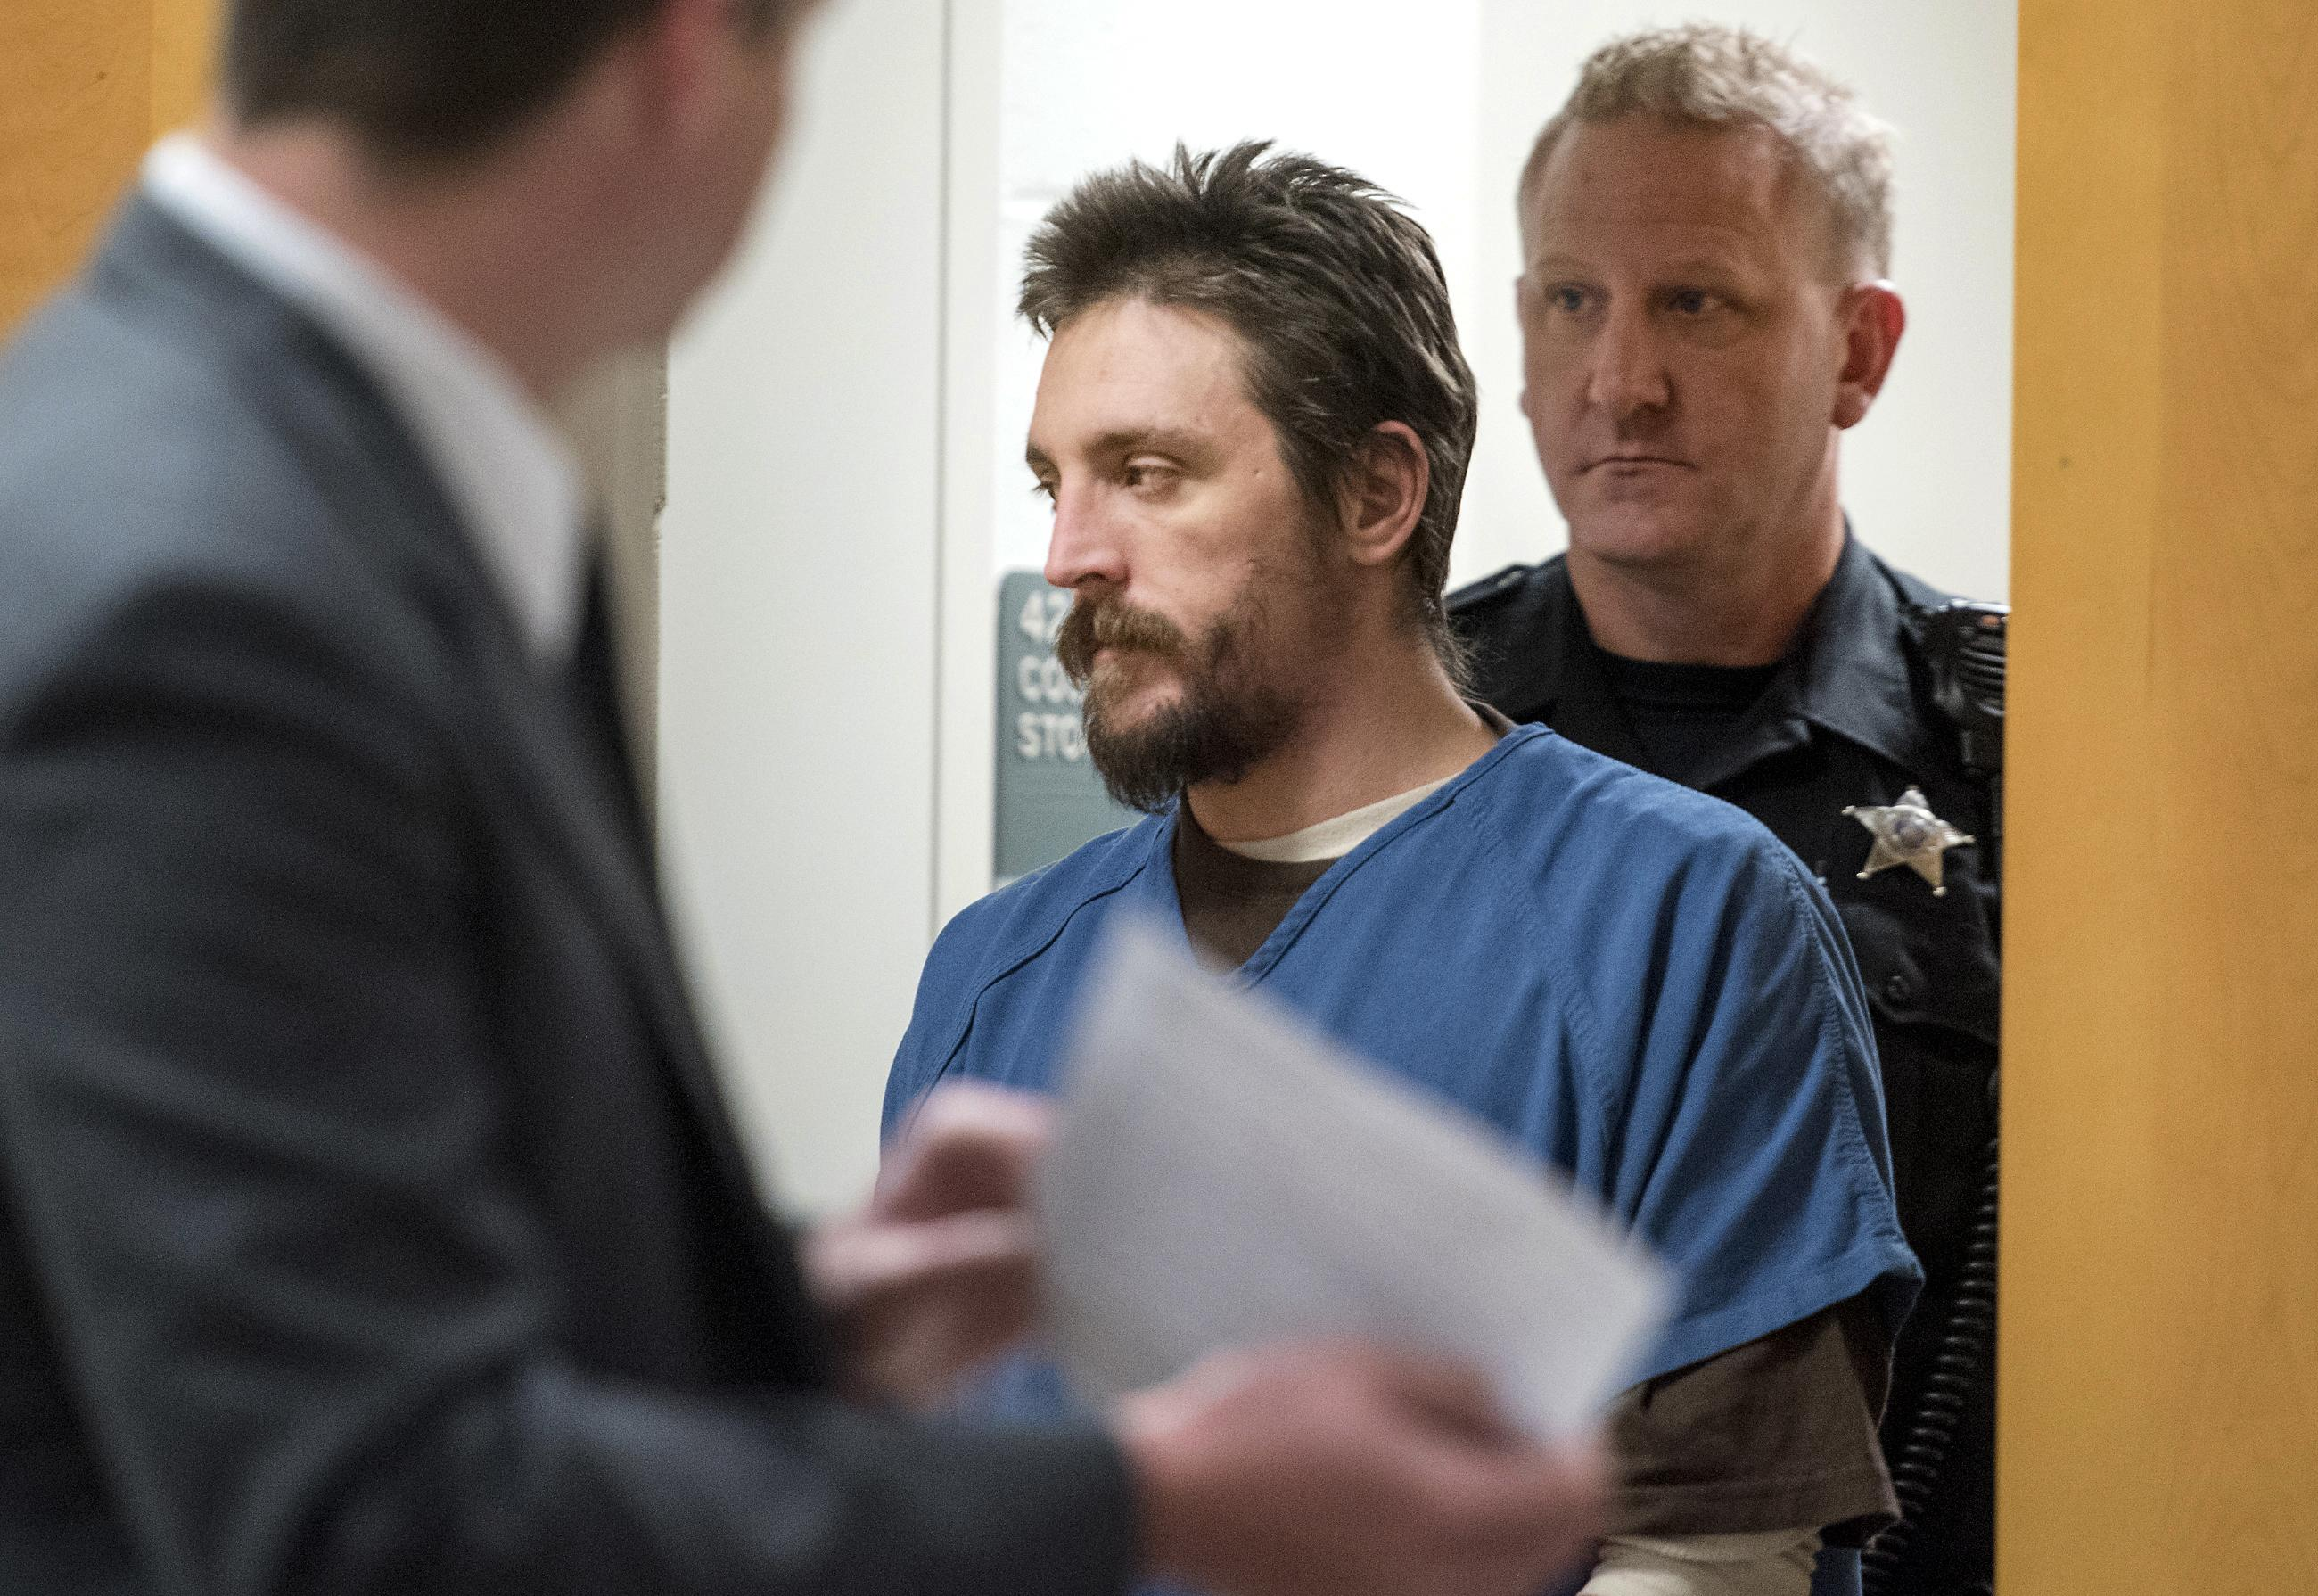 In this Oct. 19, 2017 file photo, Joseph Jakubowski is escorted into a courtroom at the Rock County Courthouse in Janesville. (Angela Major/The Janesville Gazette via AP, File)